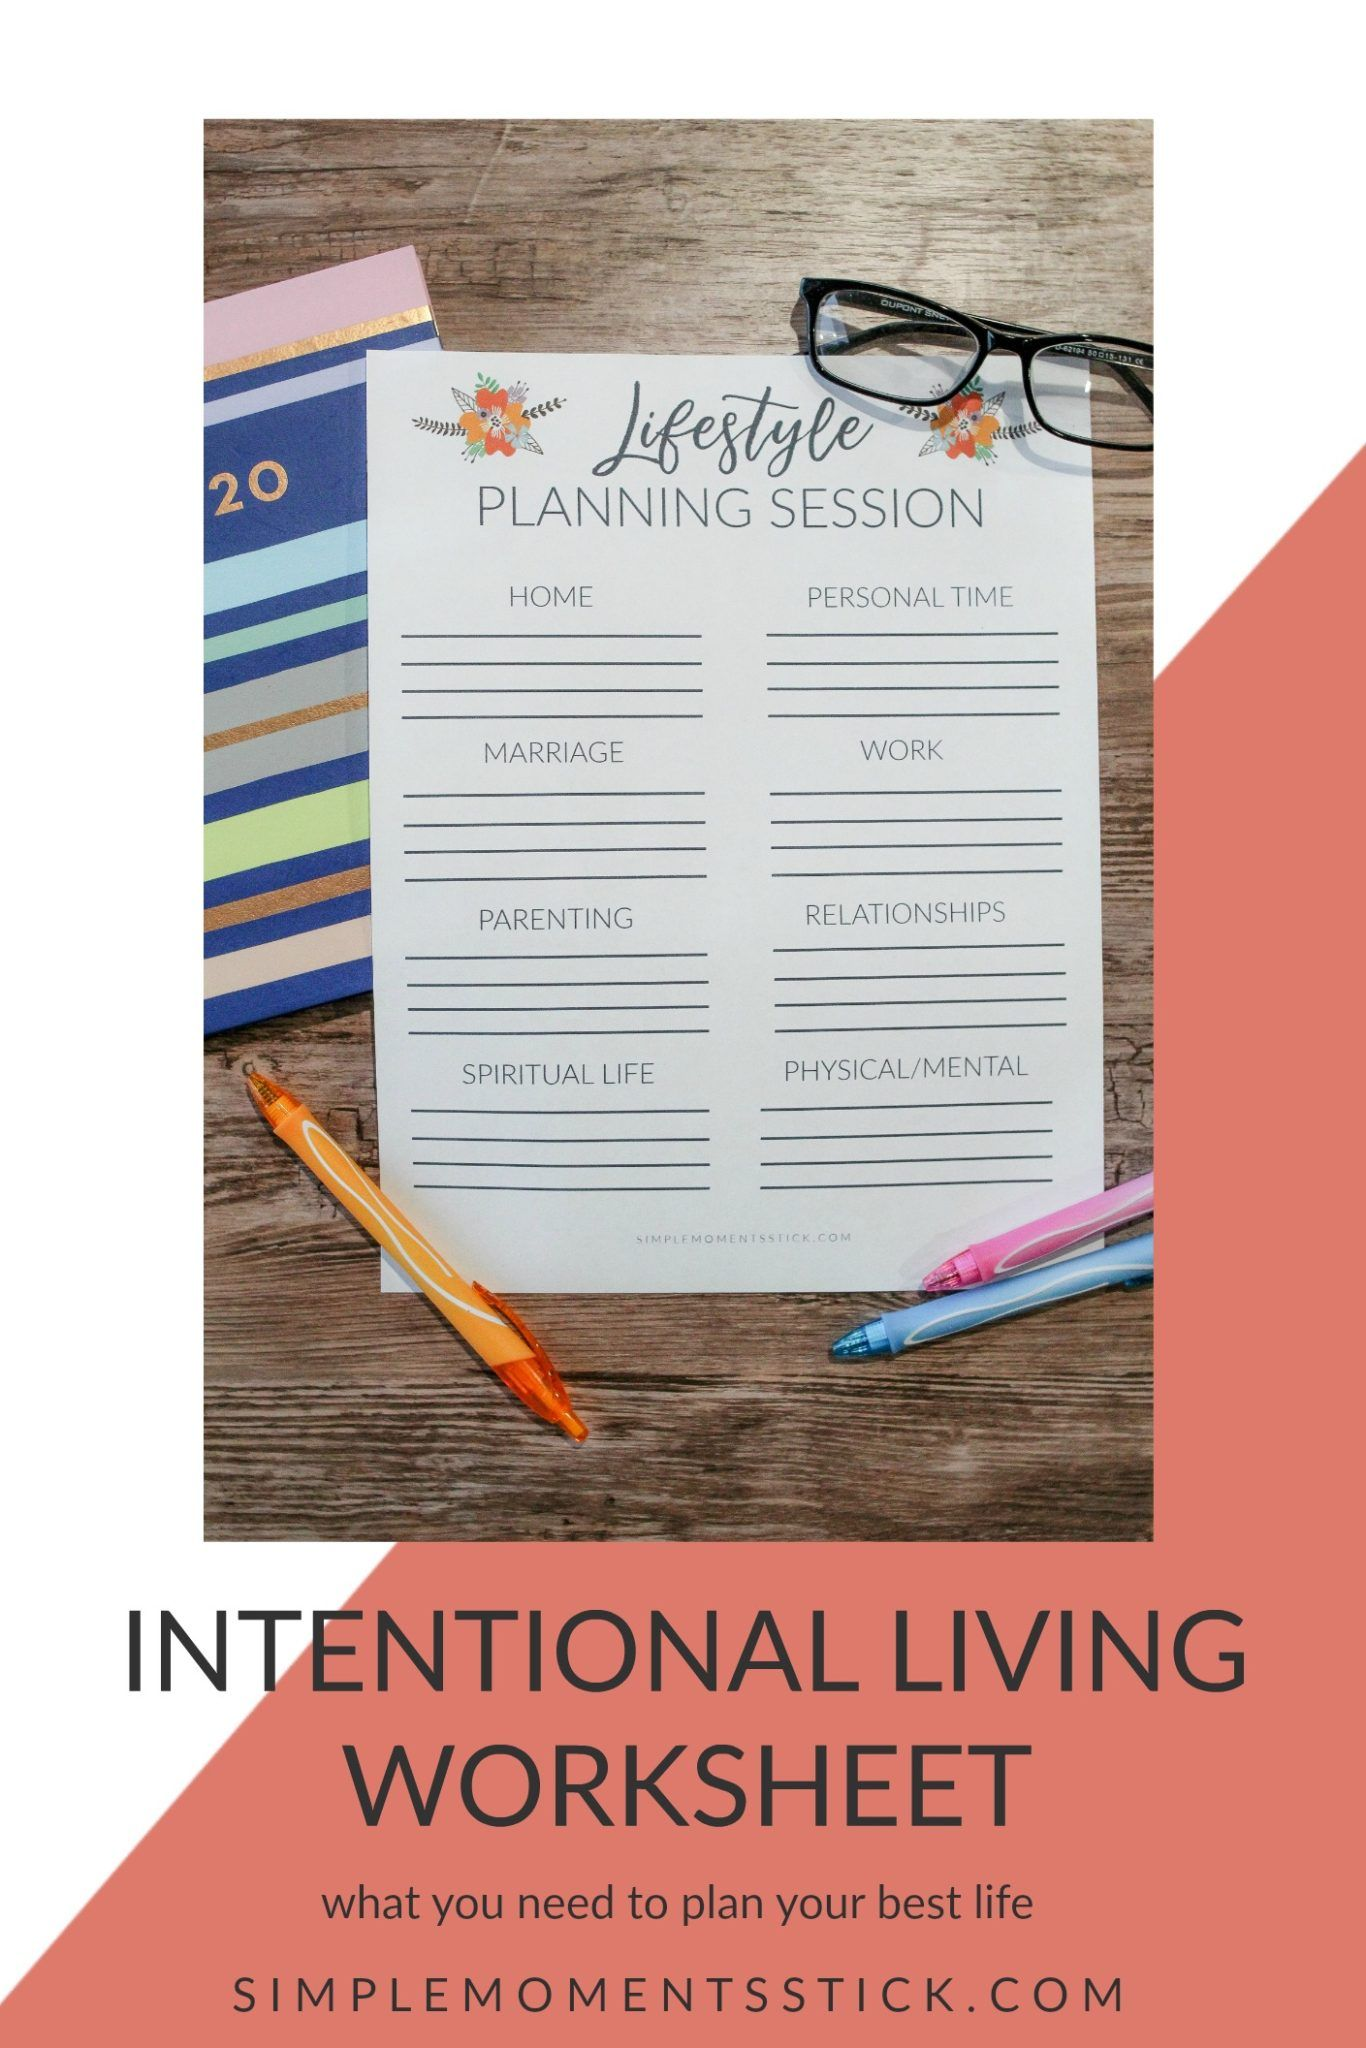 Five Steps To Making Intentional Lifestyle Changes